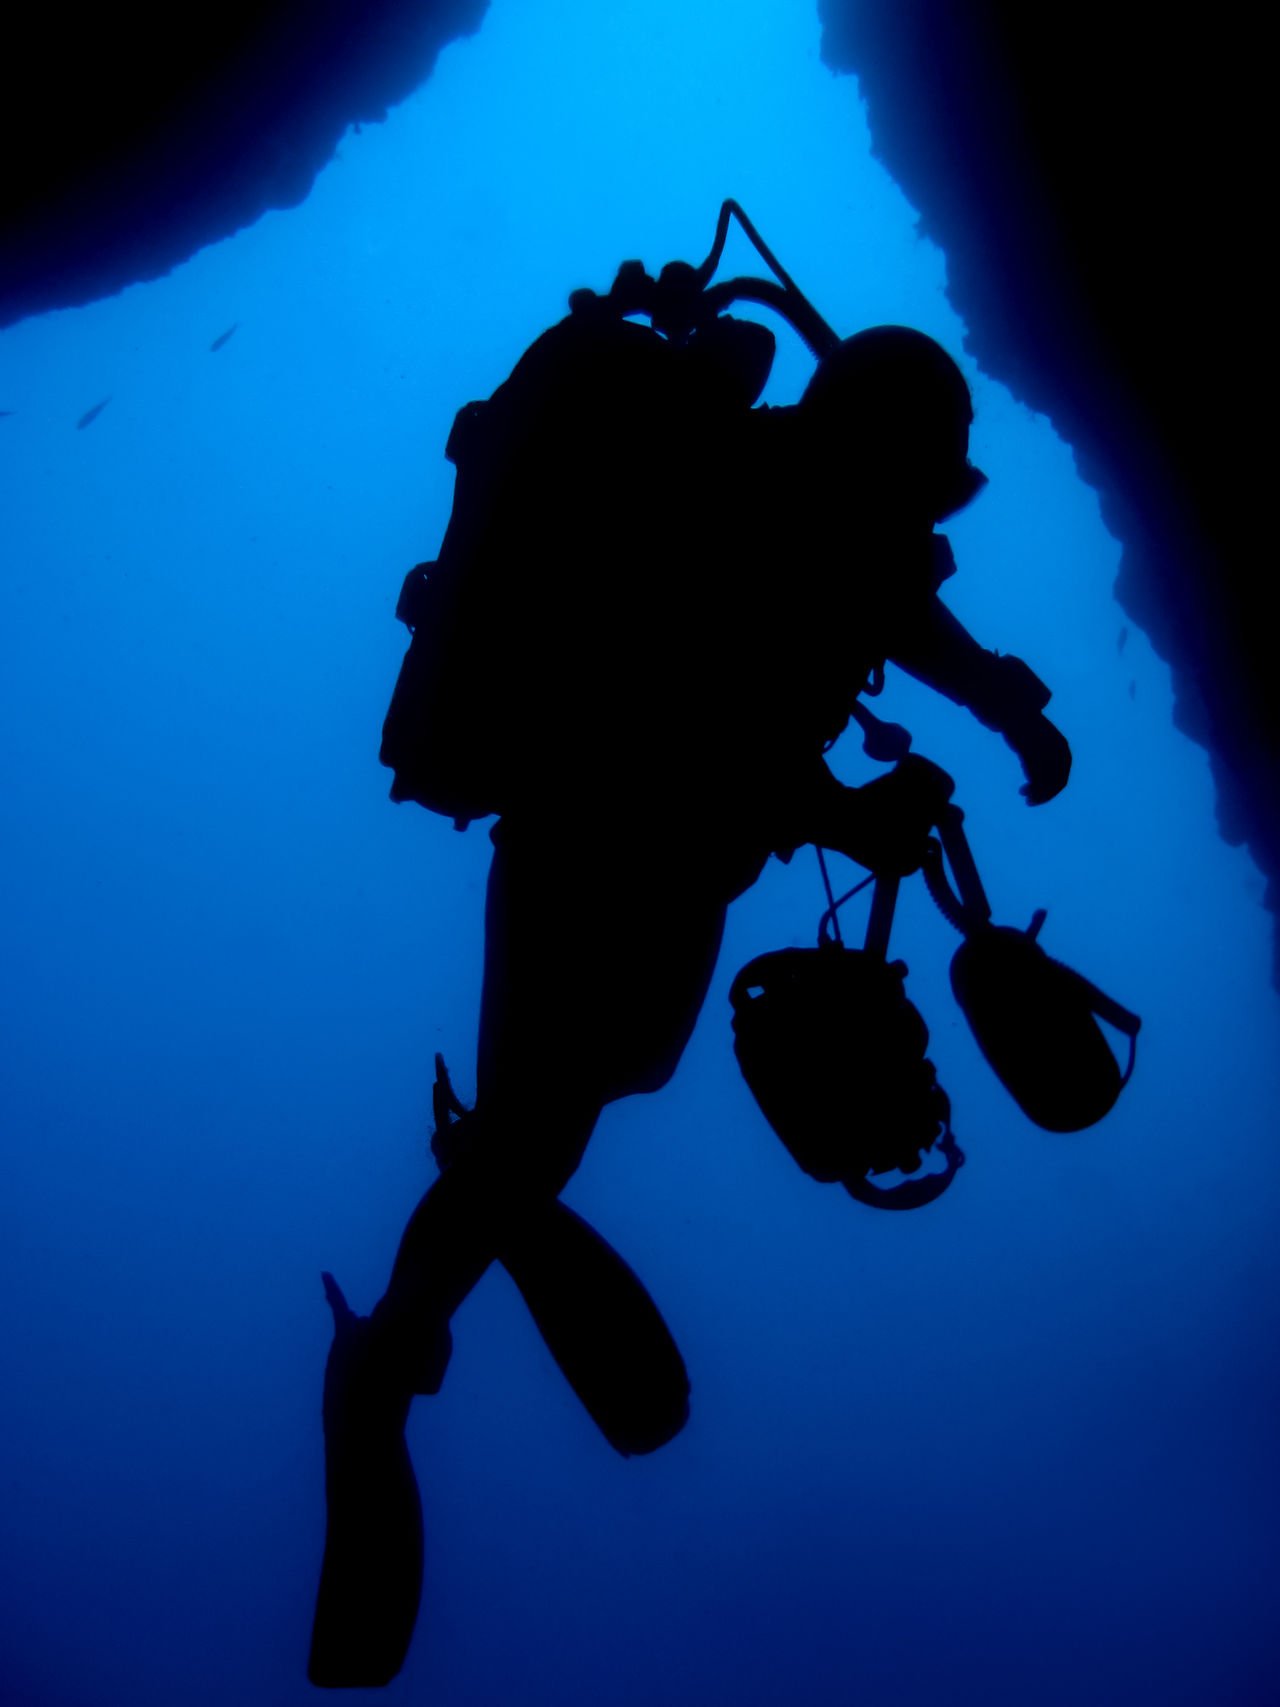 Silhouette of professional underwater photographer in front of underwater cave exit Cave Equipement Photography Proffesional SCUBA Scuba Diver Scubadiving Silhouette Underwater Underwater Photographer Underwater Photography